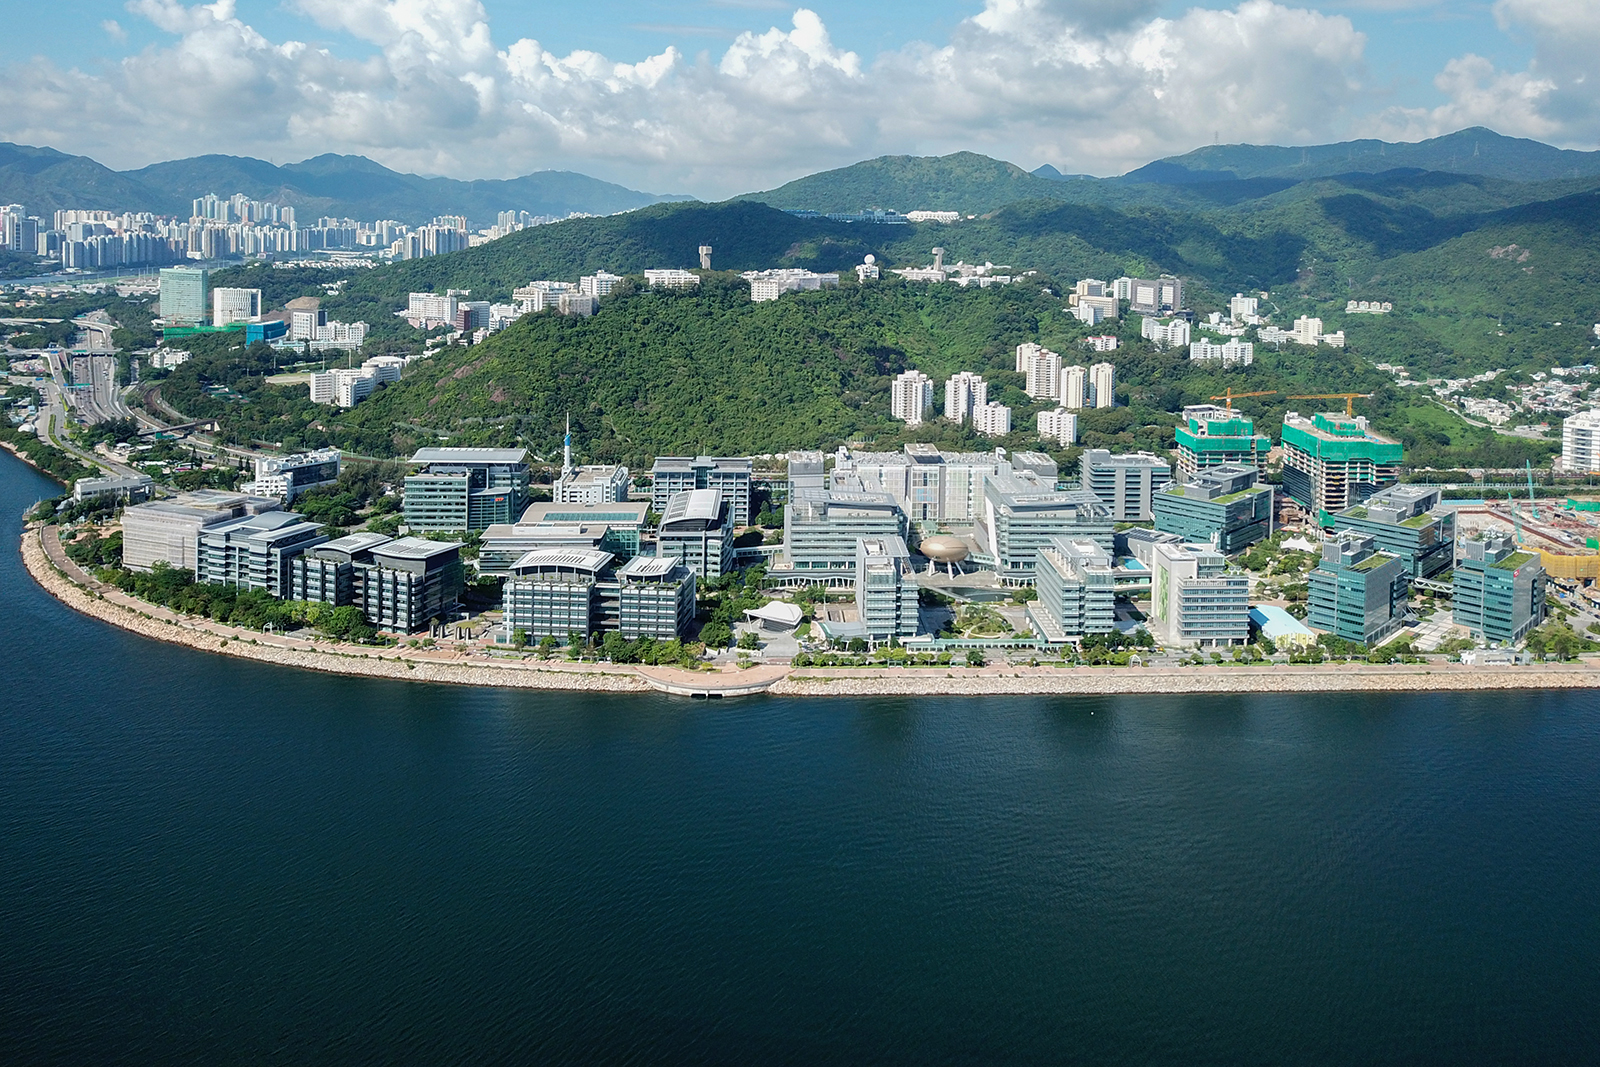 Hong Kong Science Park Overview 201806.jpg